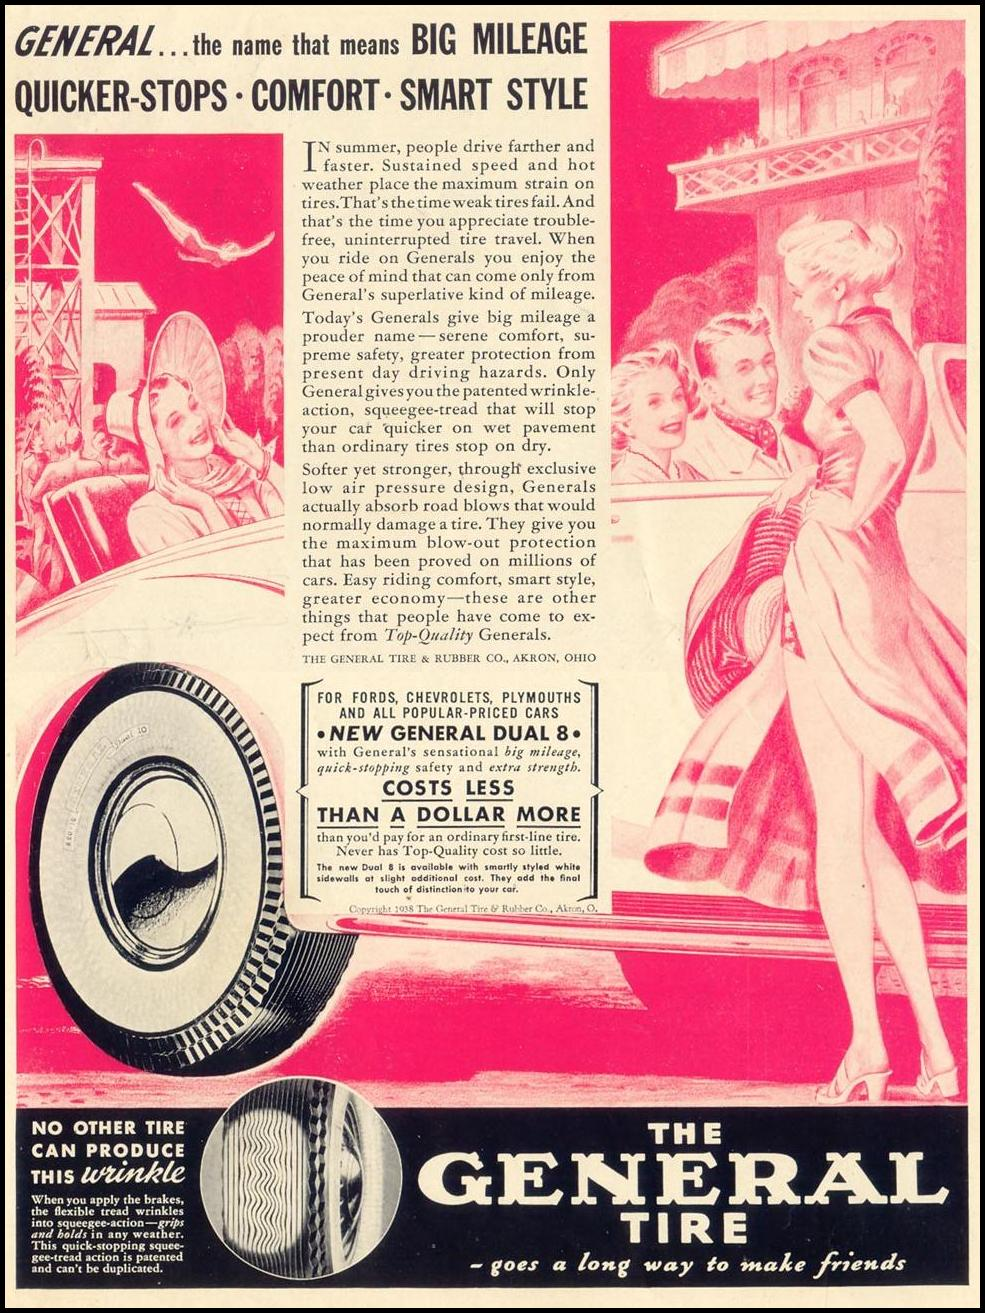 THE GENERAL TIRE LIFE 07/18/1938 INSIDE FRONT